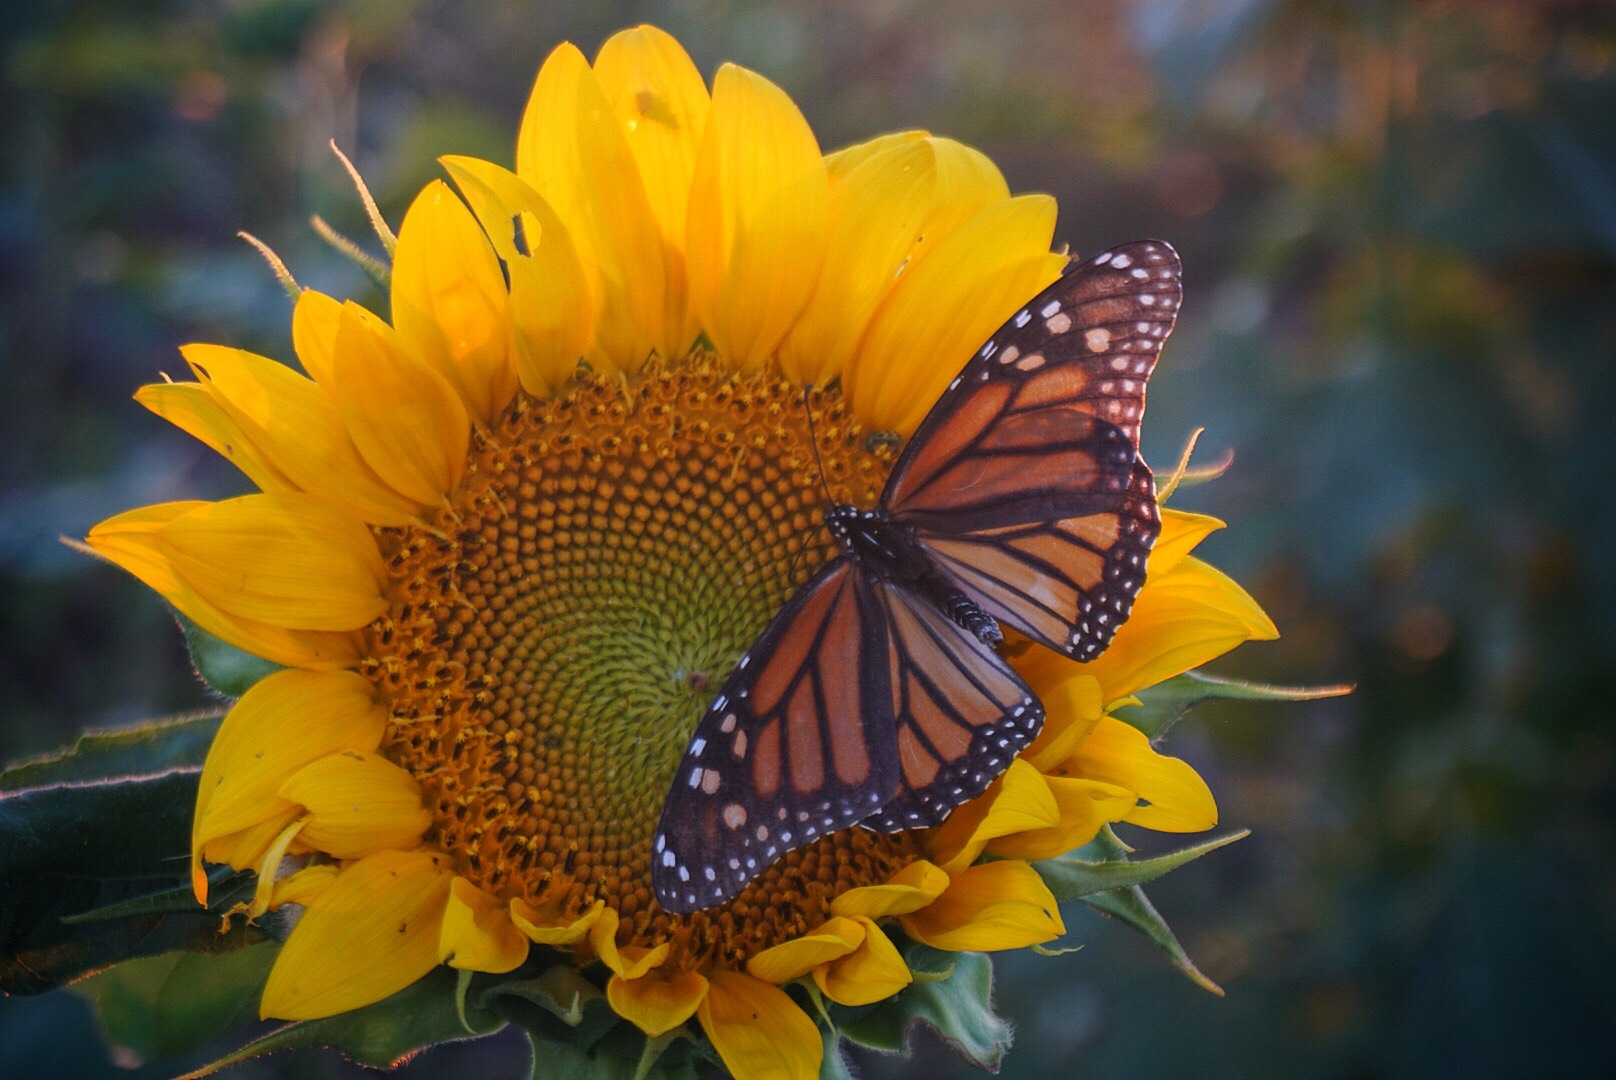 Sunflower and Monarch butterfly, near Berryton, Kan., 2018 (Photo by Micah Naeger)